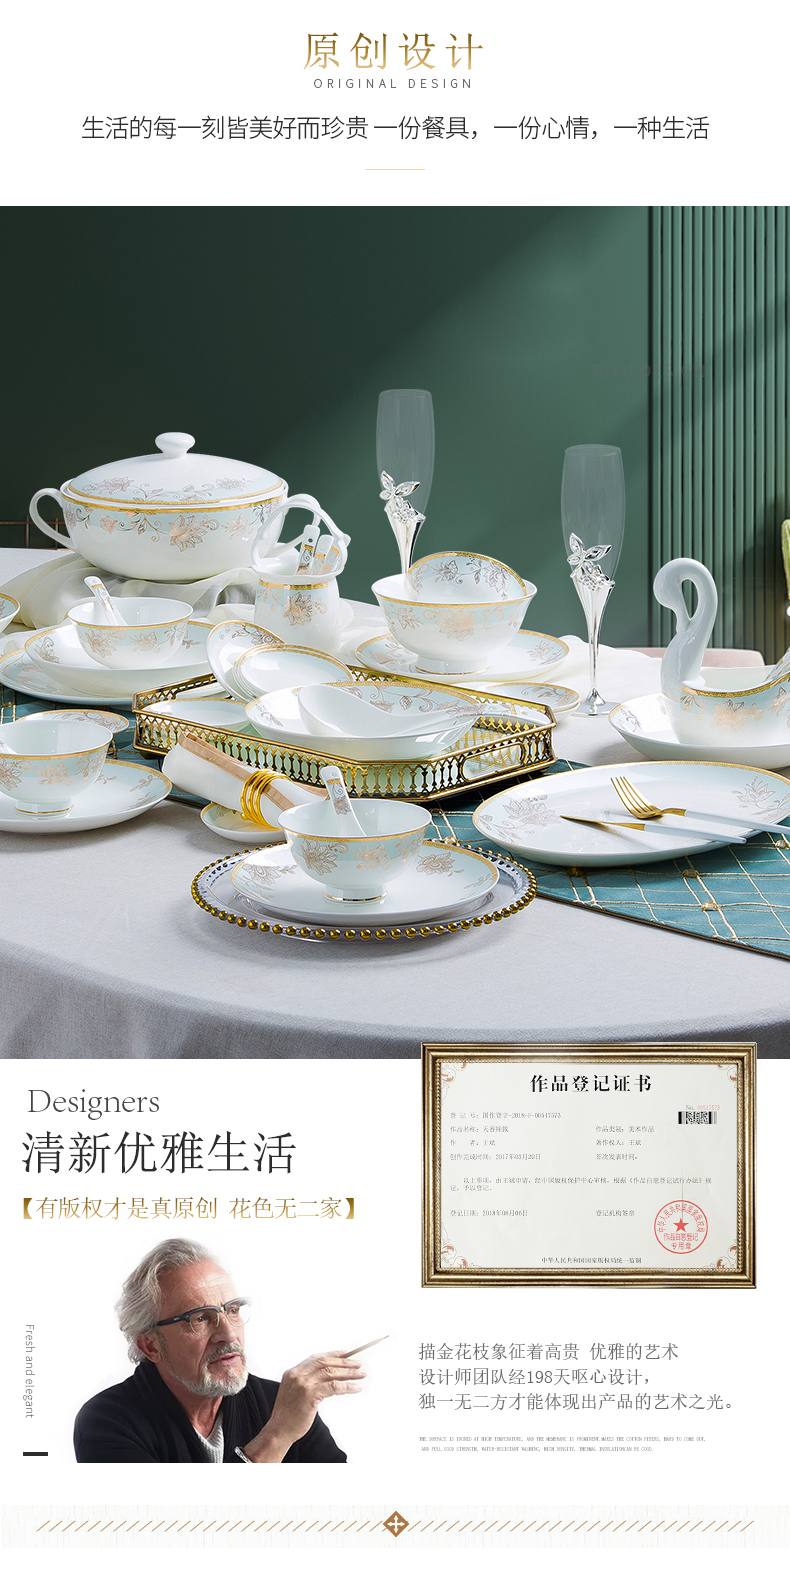 Wooden house, to taste the dishes suit household contracted light excessive jingdezhen ceramic tableware suit Nordic ceramic dishes